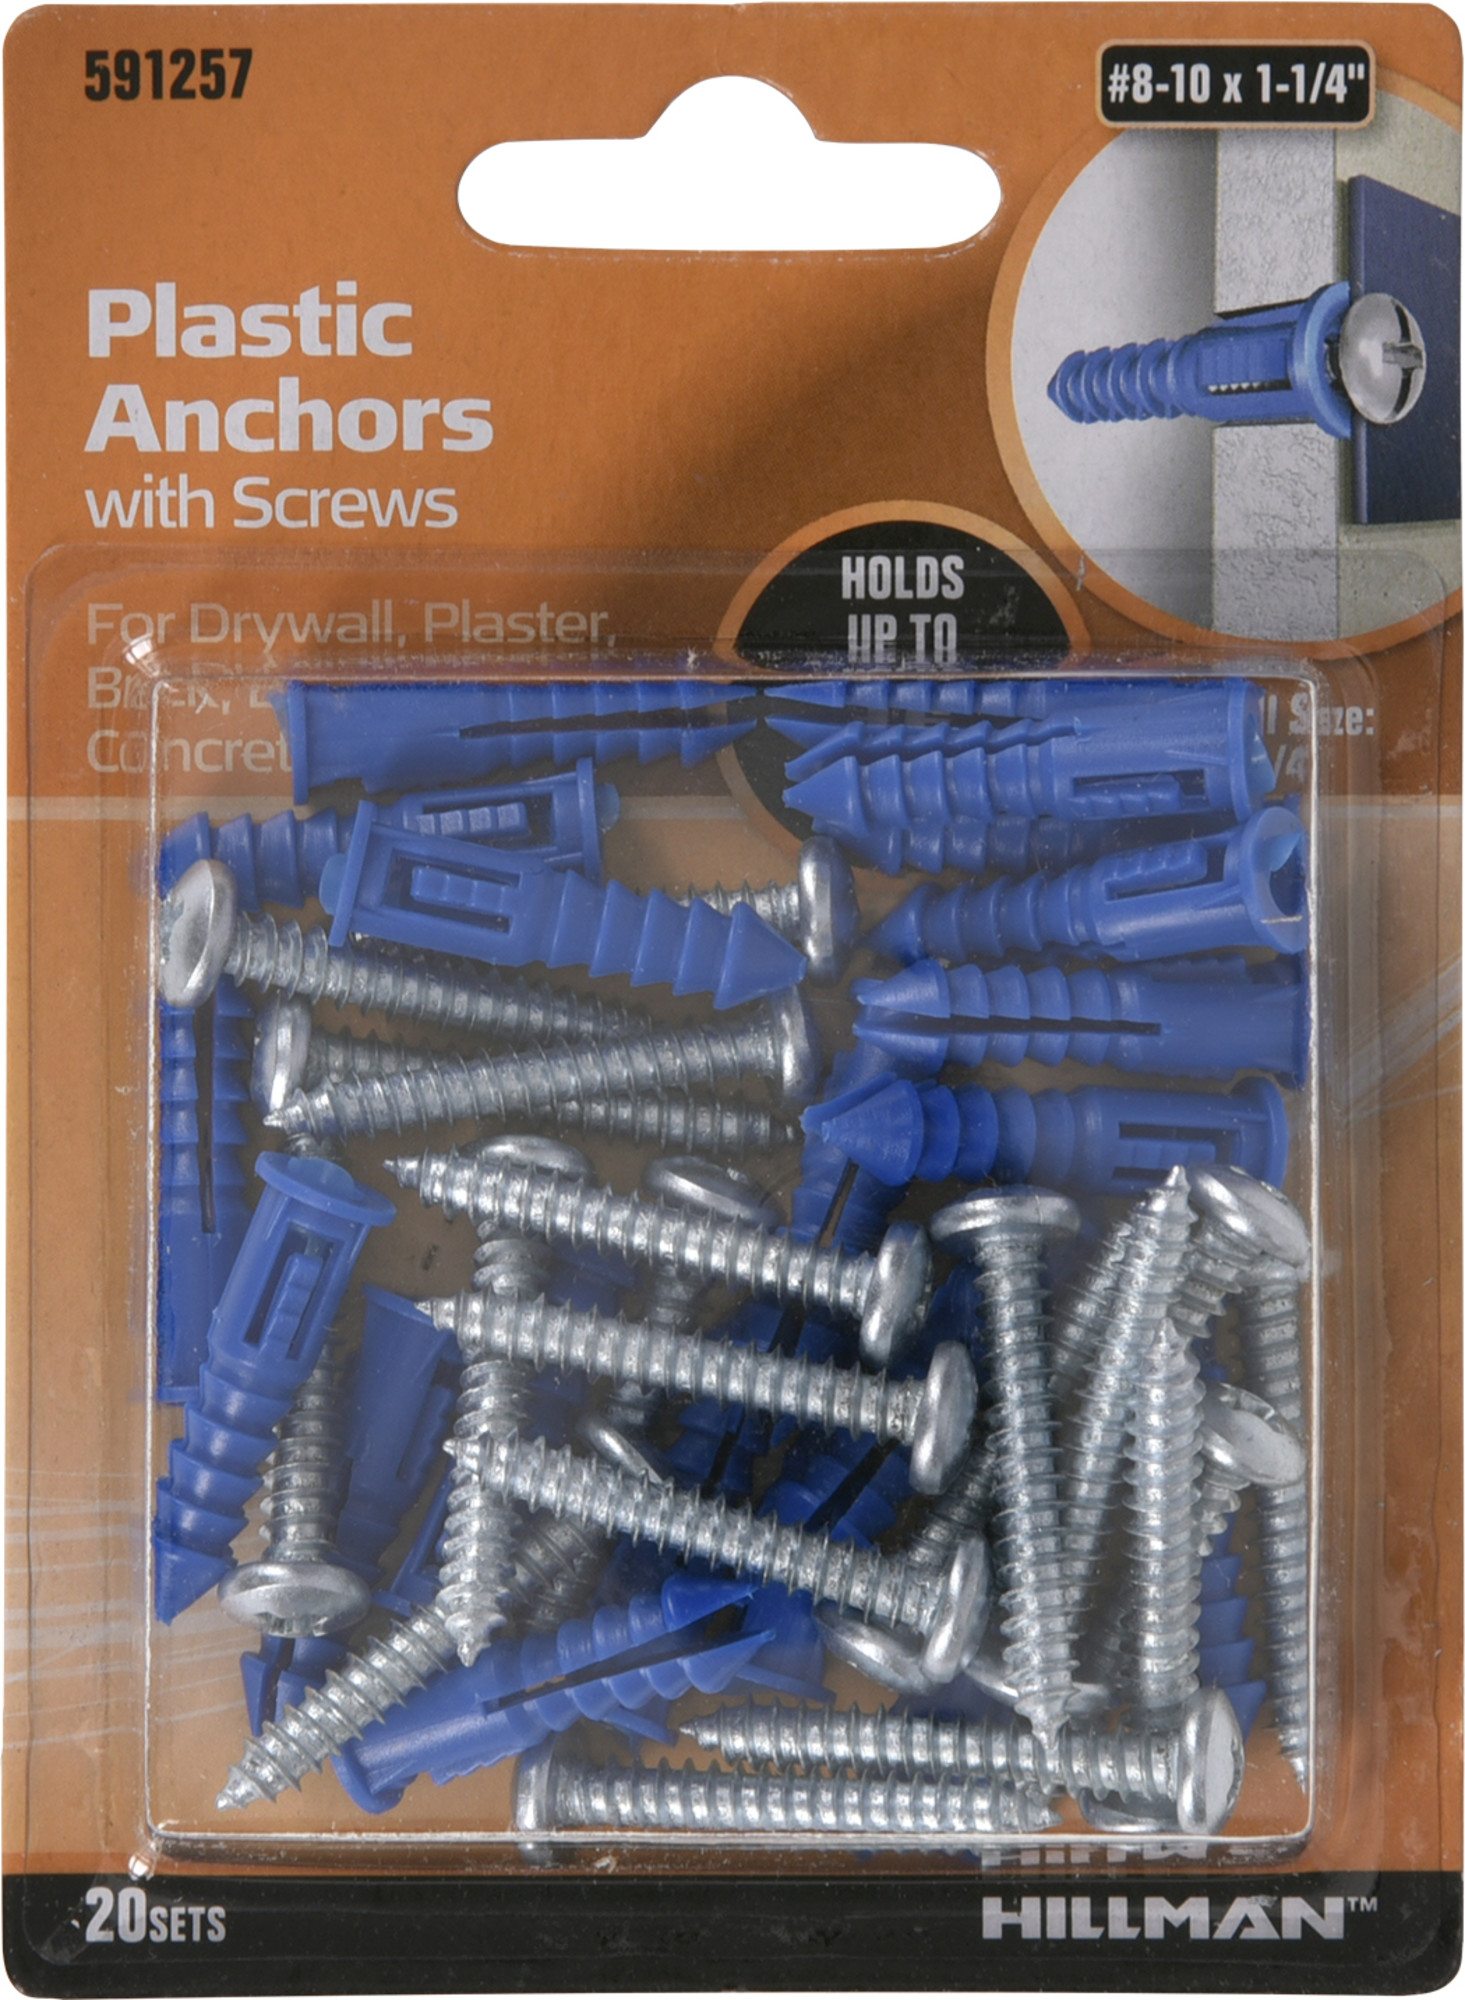 The Hillman Group 5036 8-10 Blue Conical Plastic Anchor 14-Pack